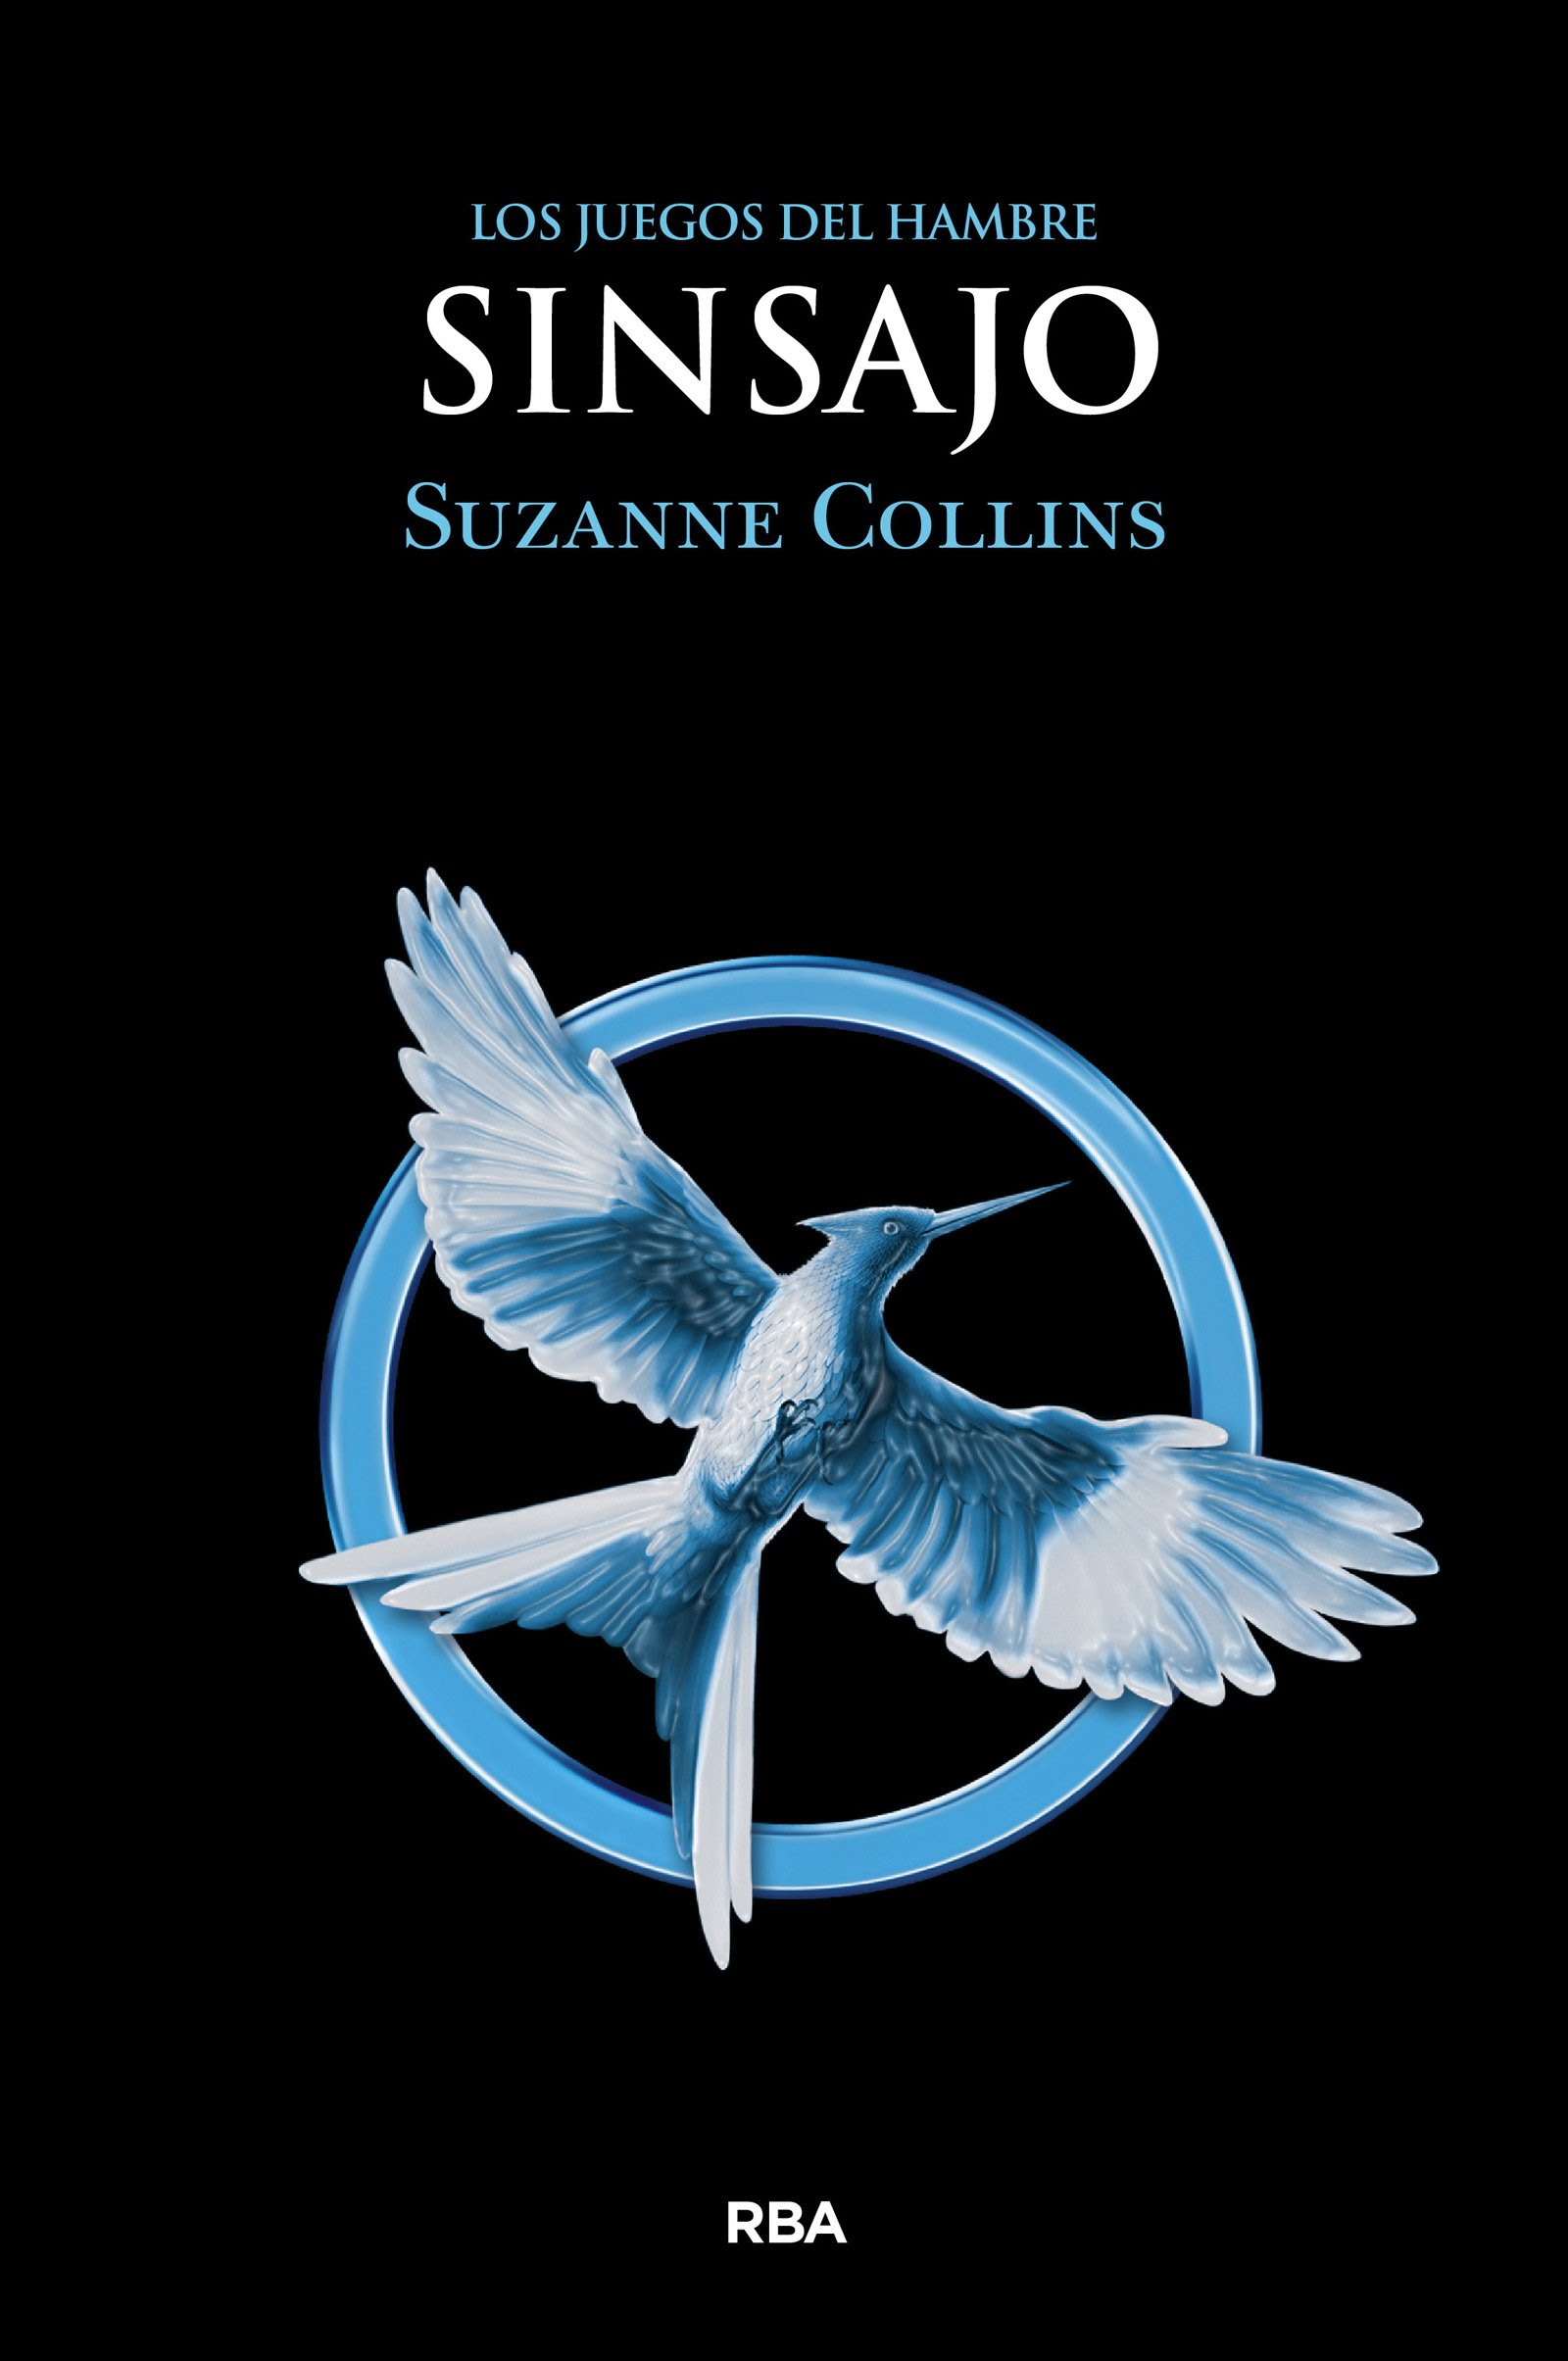 sinsajo-suzanne-colins-book-tag-inside-out-opinion-literatura-nominaciones-blogs-blogger